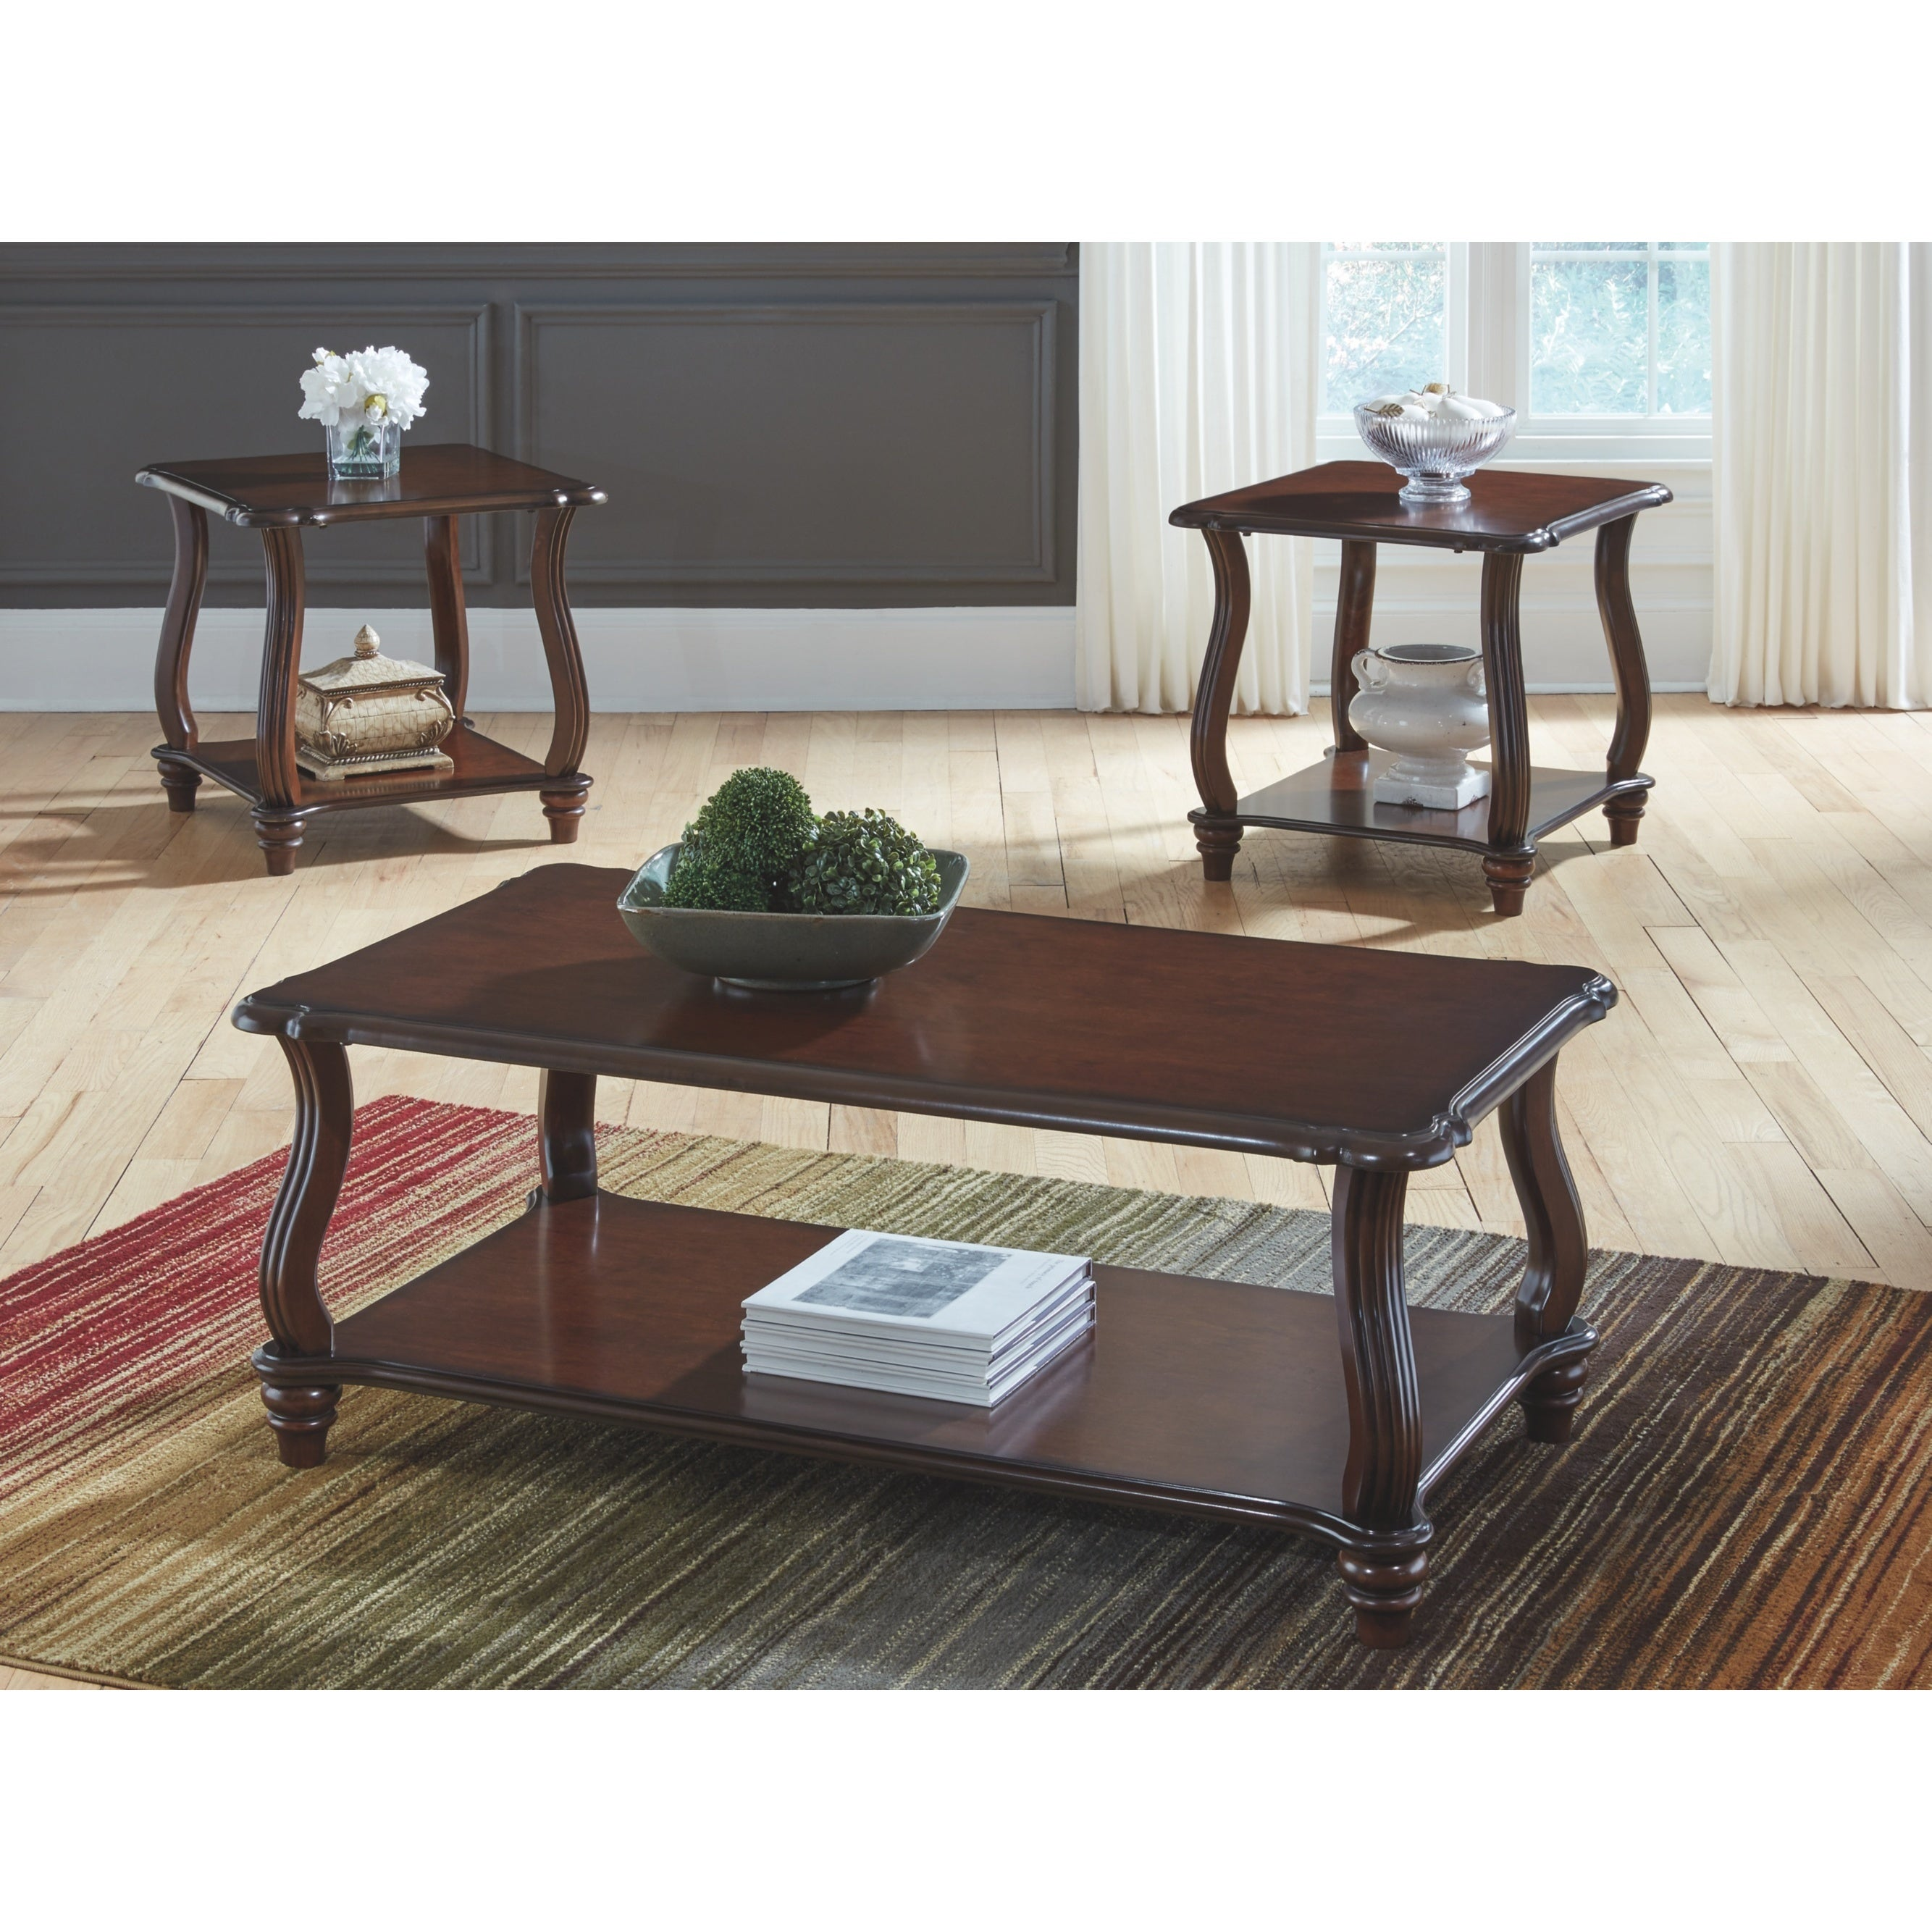 carshaw dark brown coffee table and two end tables set cocktail with seating primitive ethan allen signature firm mattress simple black nightstand pallet patio furniture